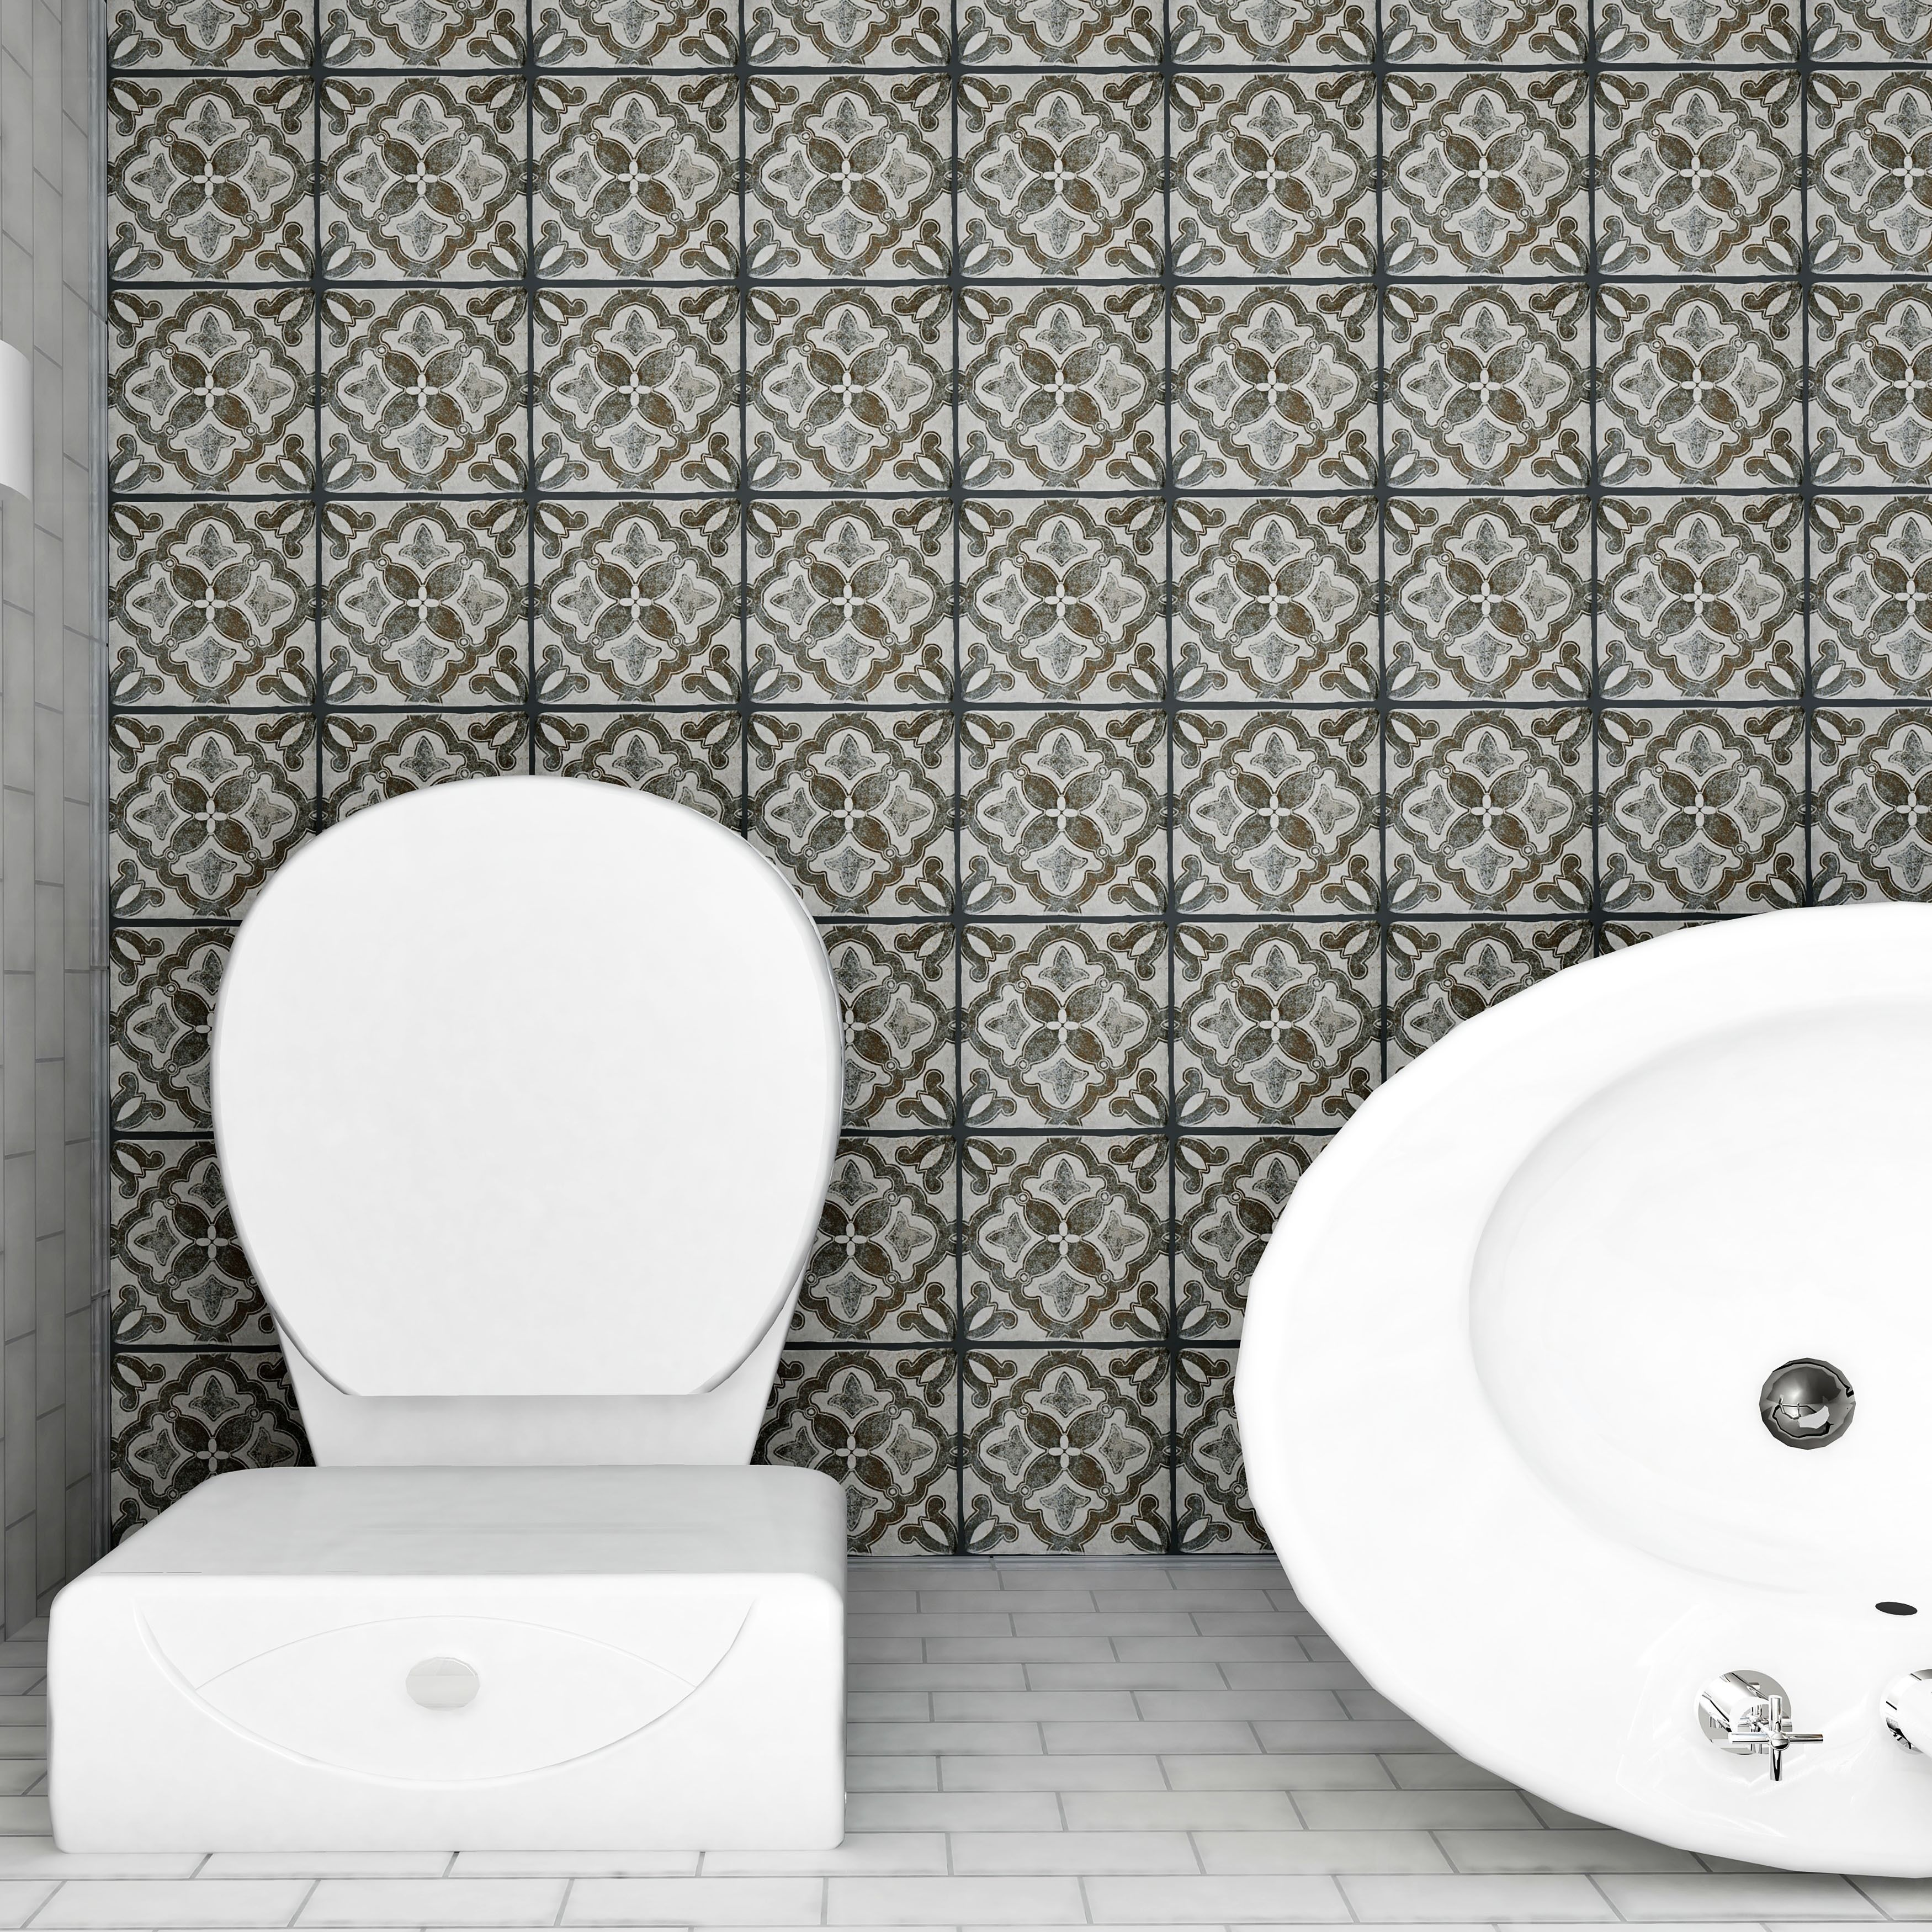 Floor Tiles: Add the classic beauty and functionality of floor tiles to your…